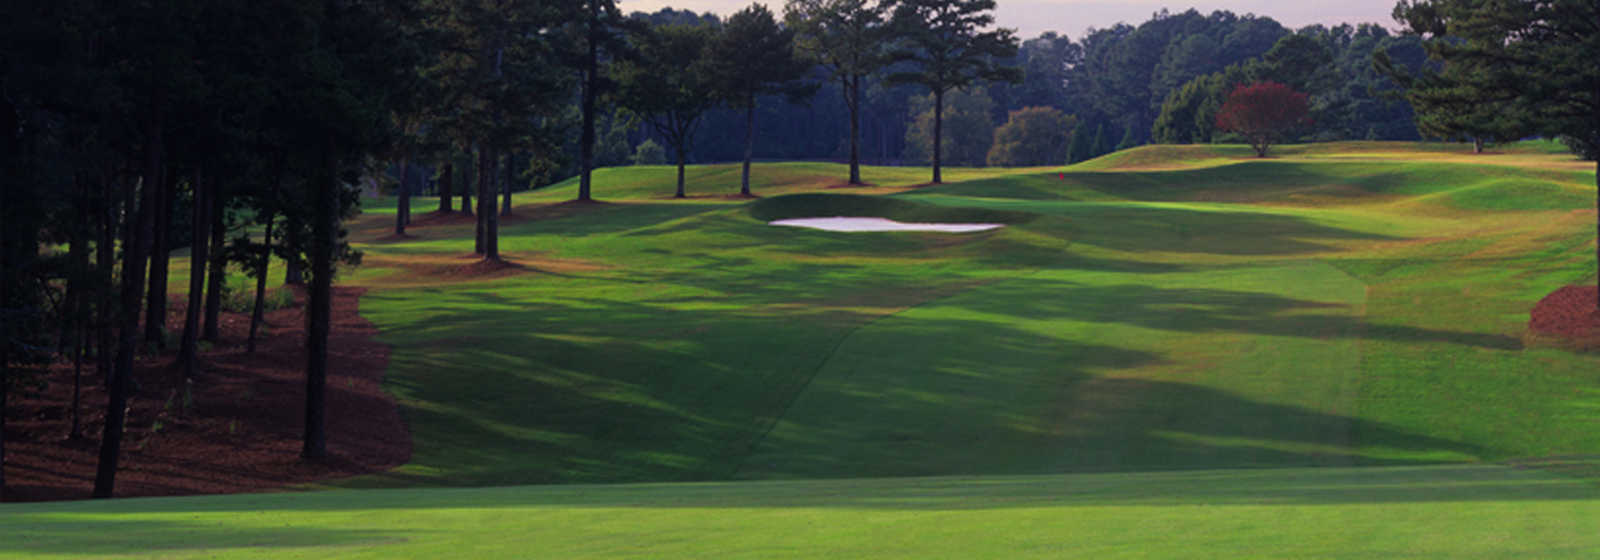 Athens Ga Golf Courses Where To Play Golf In Athens Ga